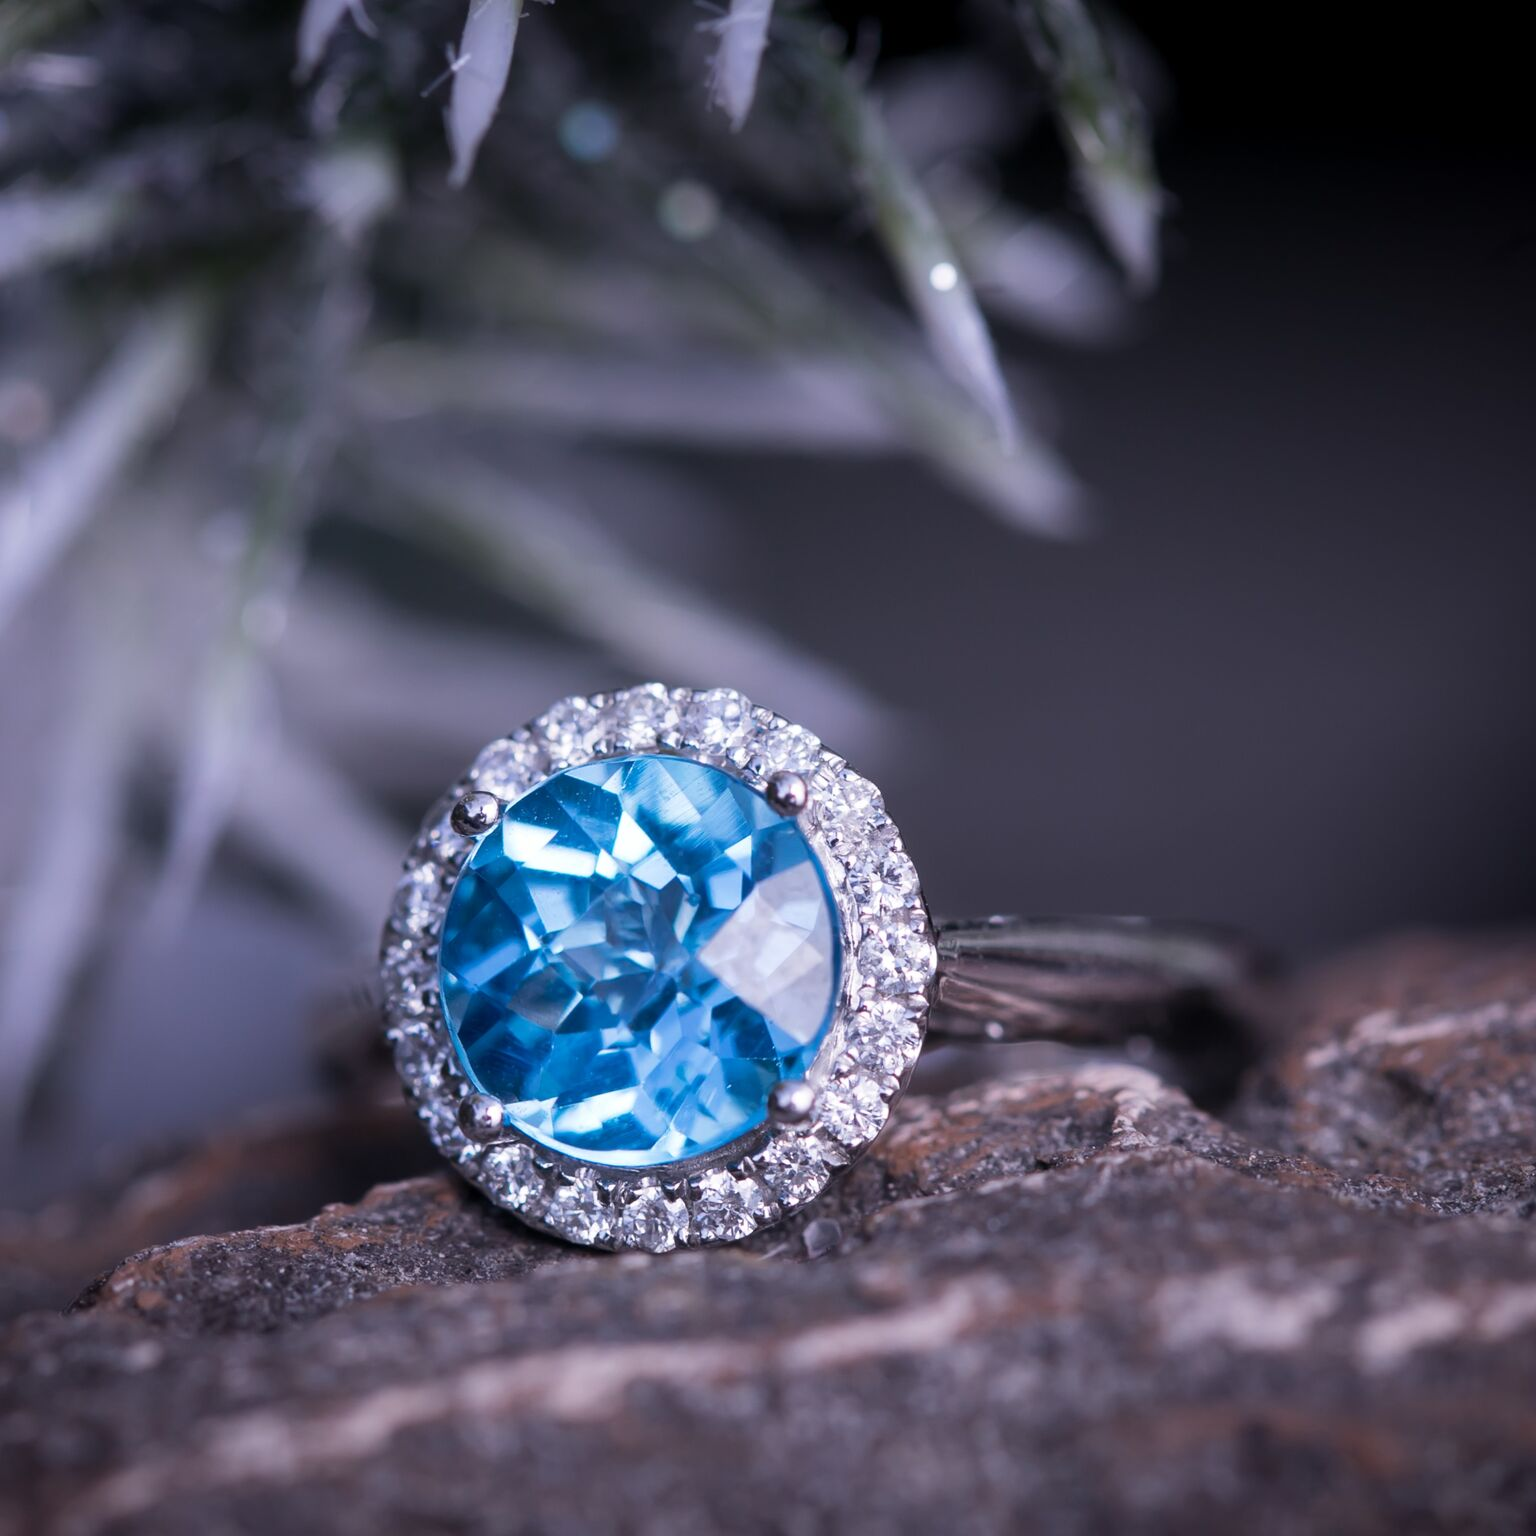 Blue Topaz Engagement Rings: Why They Are Trending This Holiday